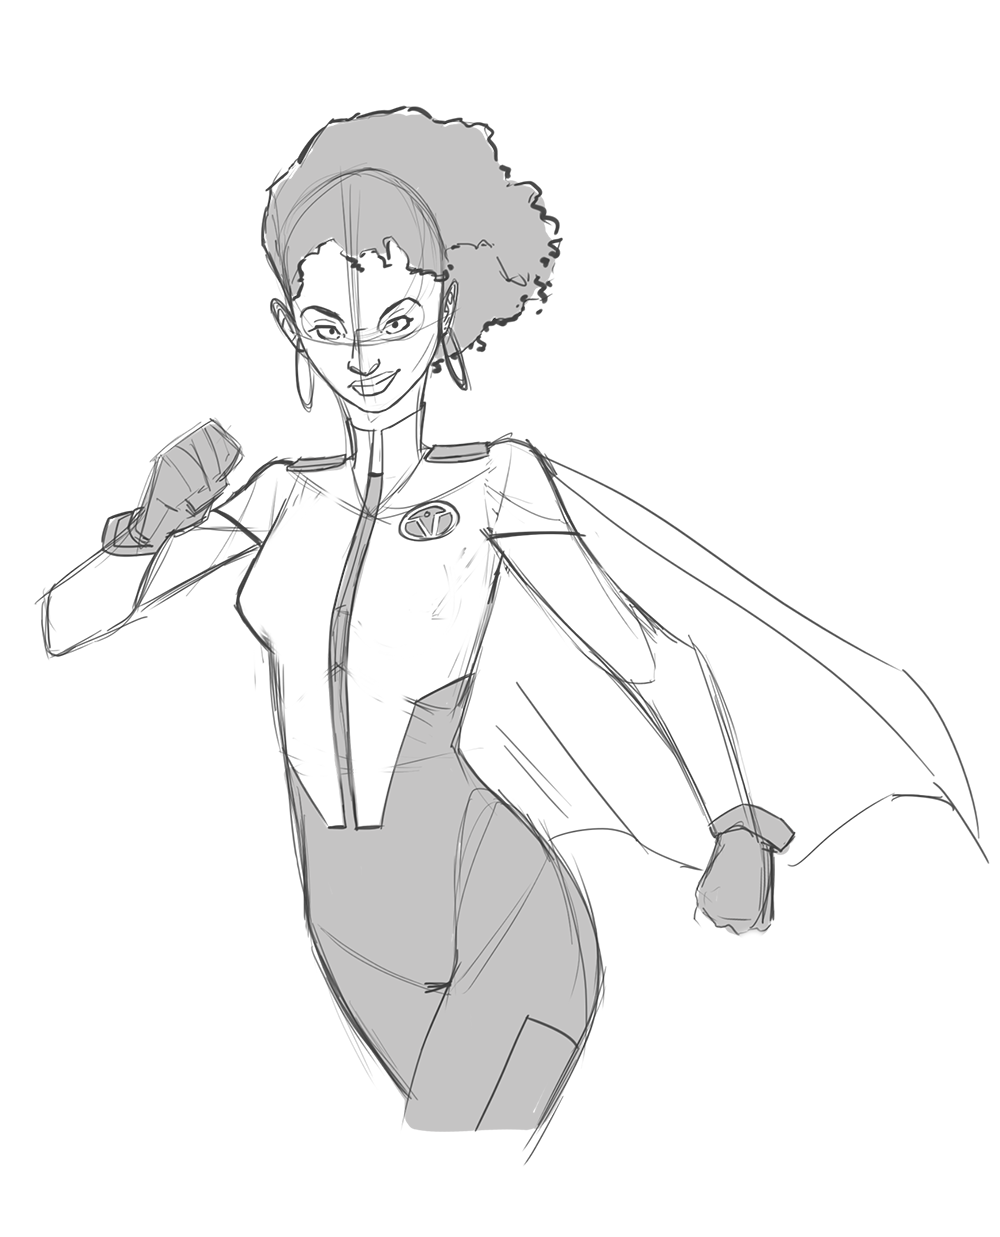 CNET_comic_character_sketch.png